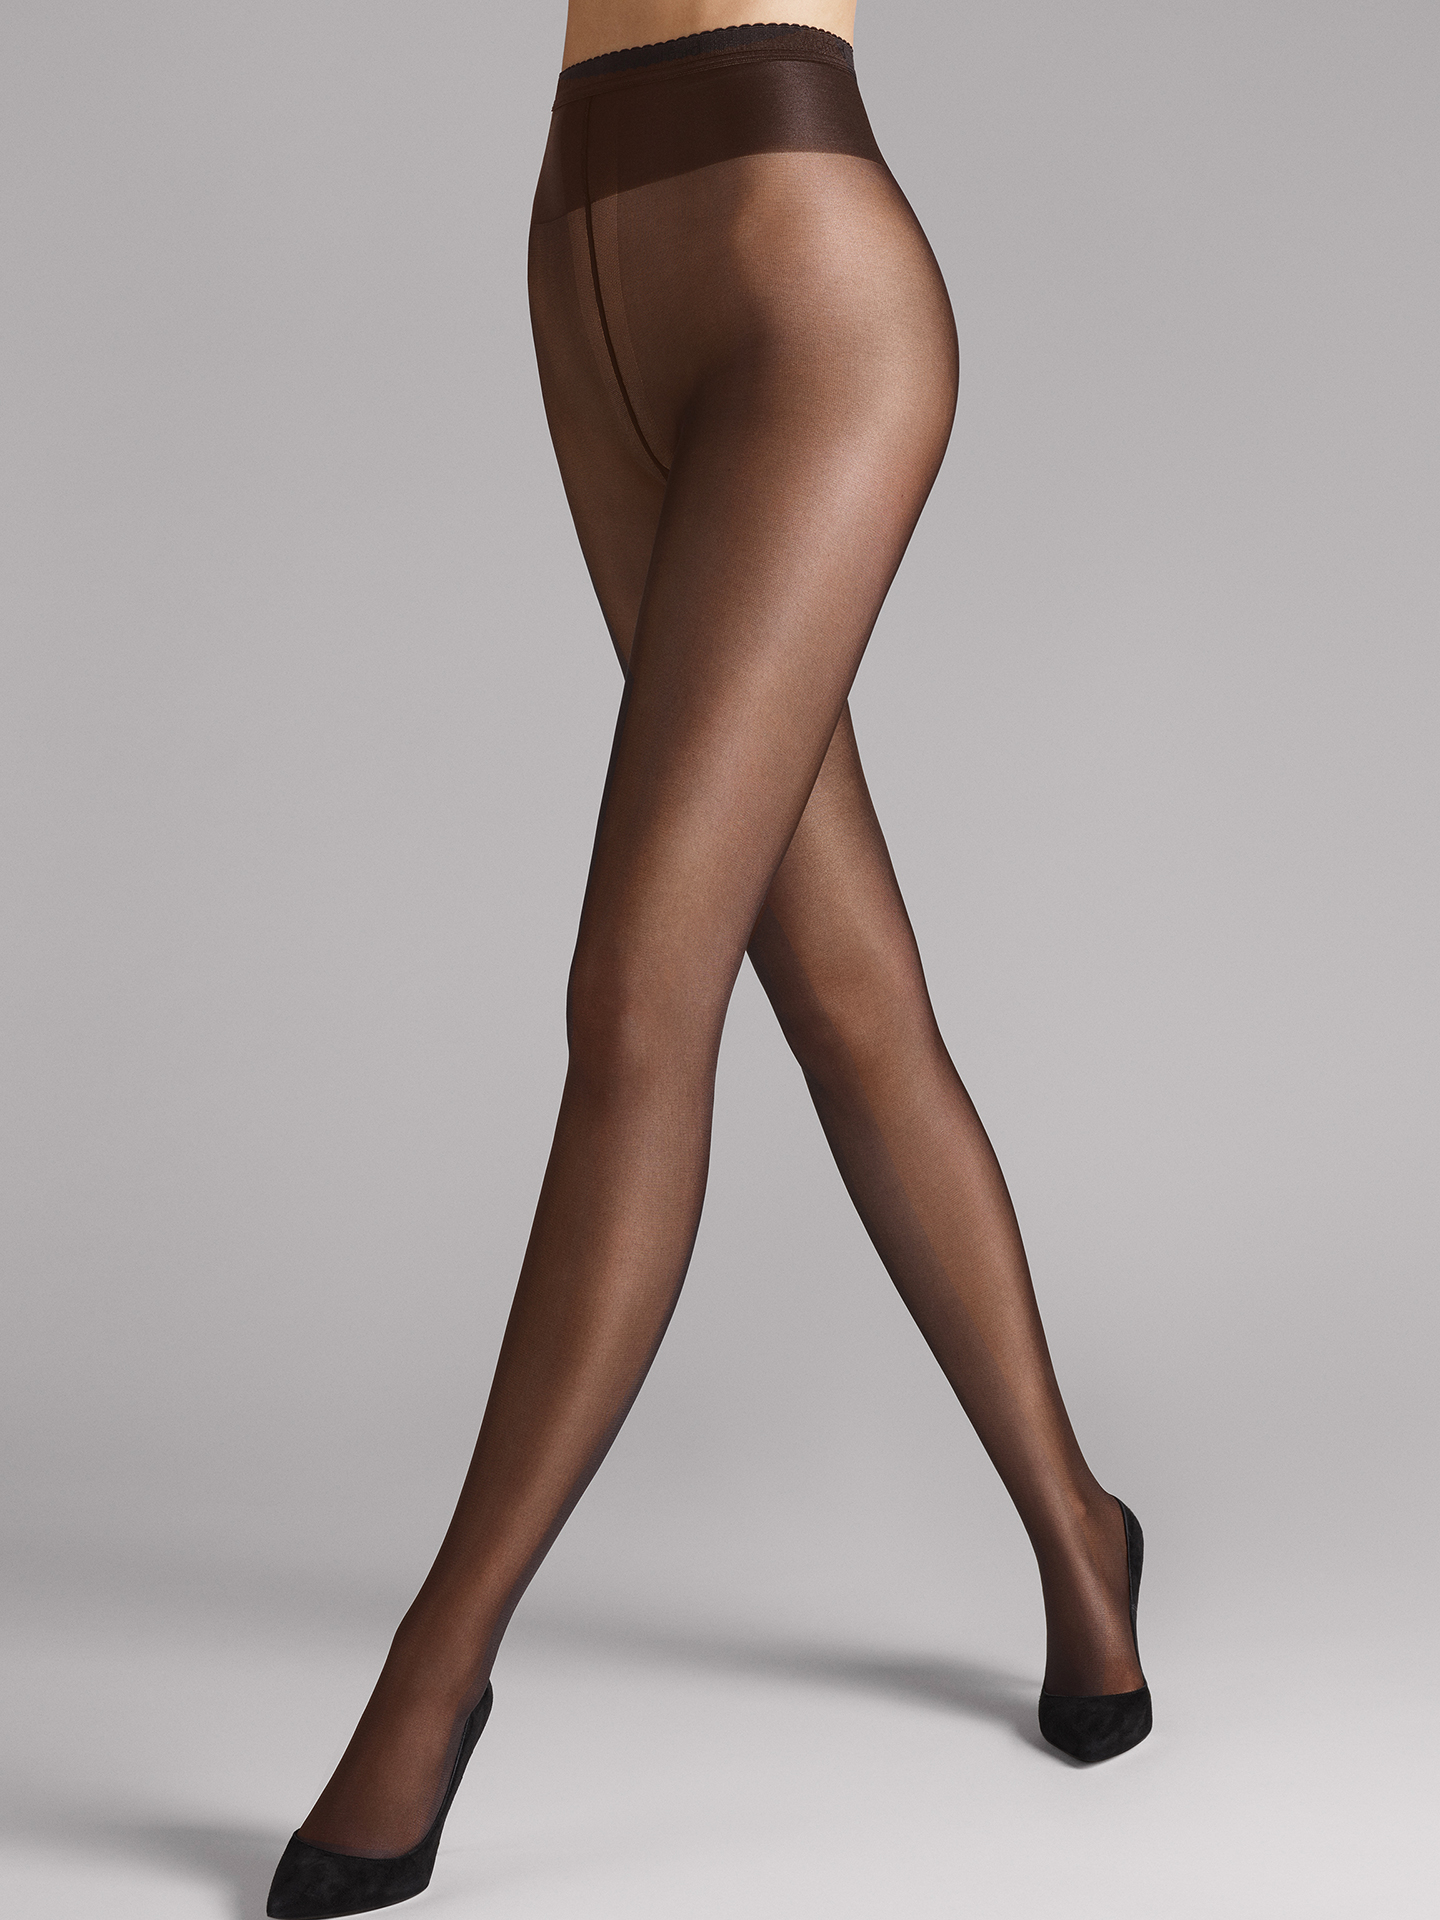 Wolford Apparel & Accessories > Clothing > Collant Neon 40 - 4250 - M